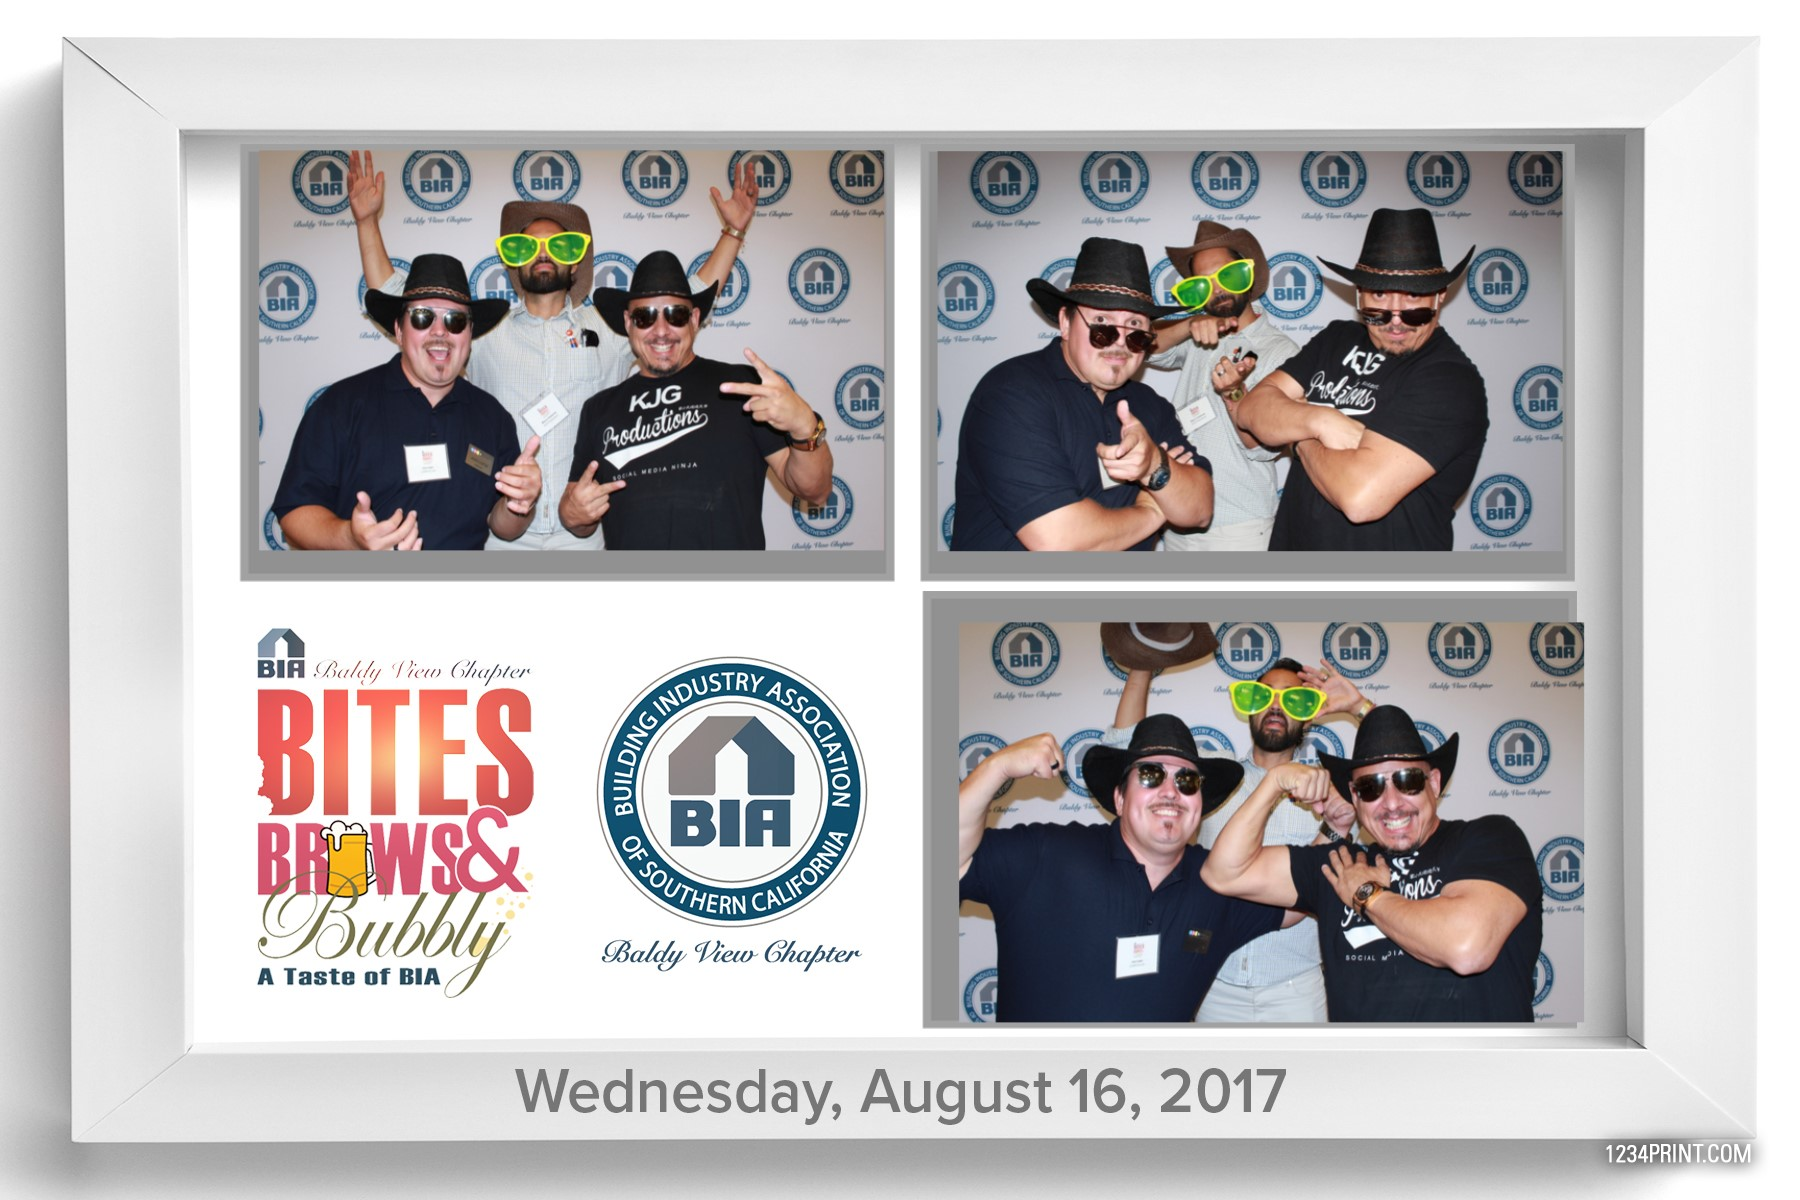 2017 Bia Bv Bites Brews Amp Bubbly Event Wrap Up Bia